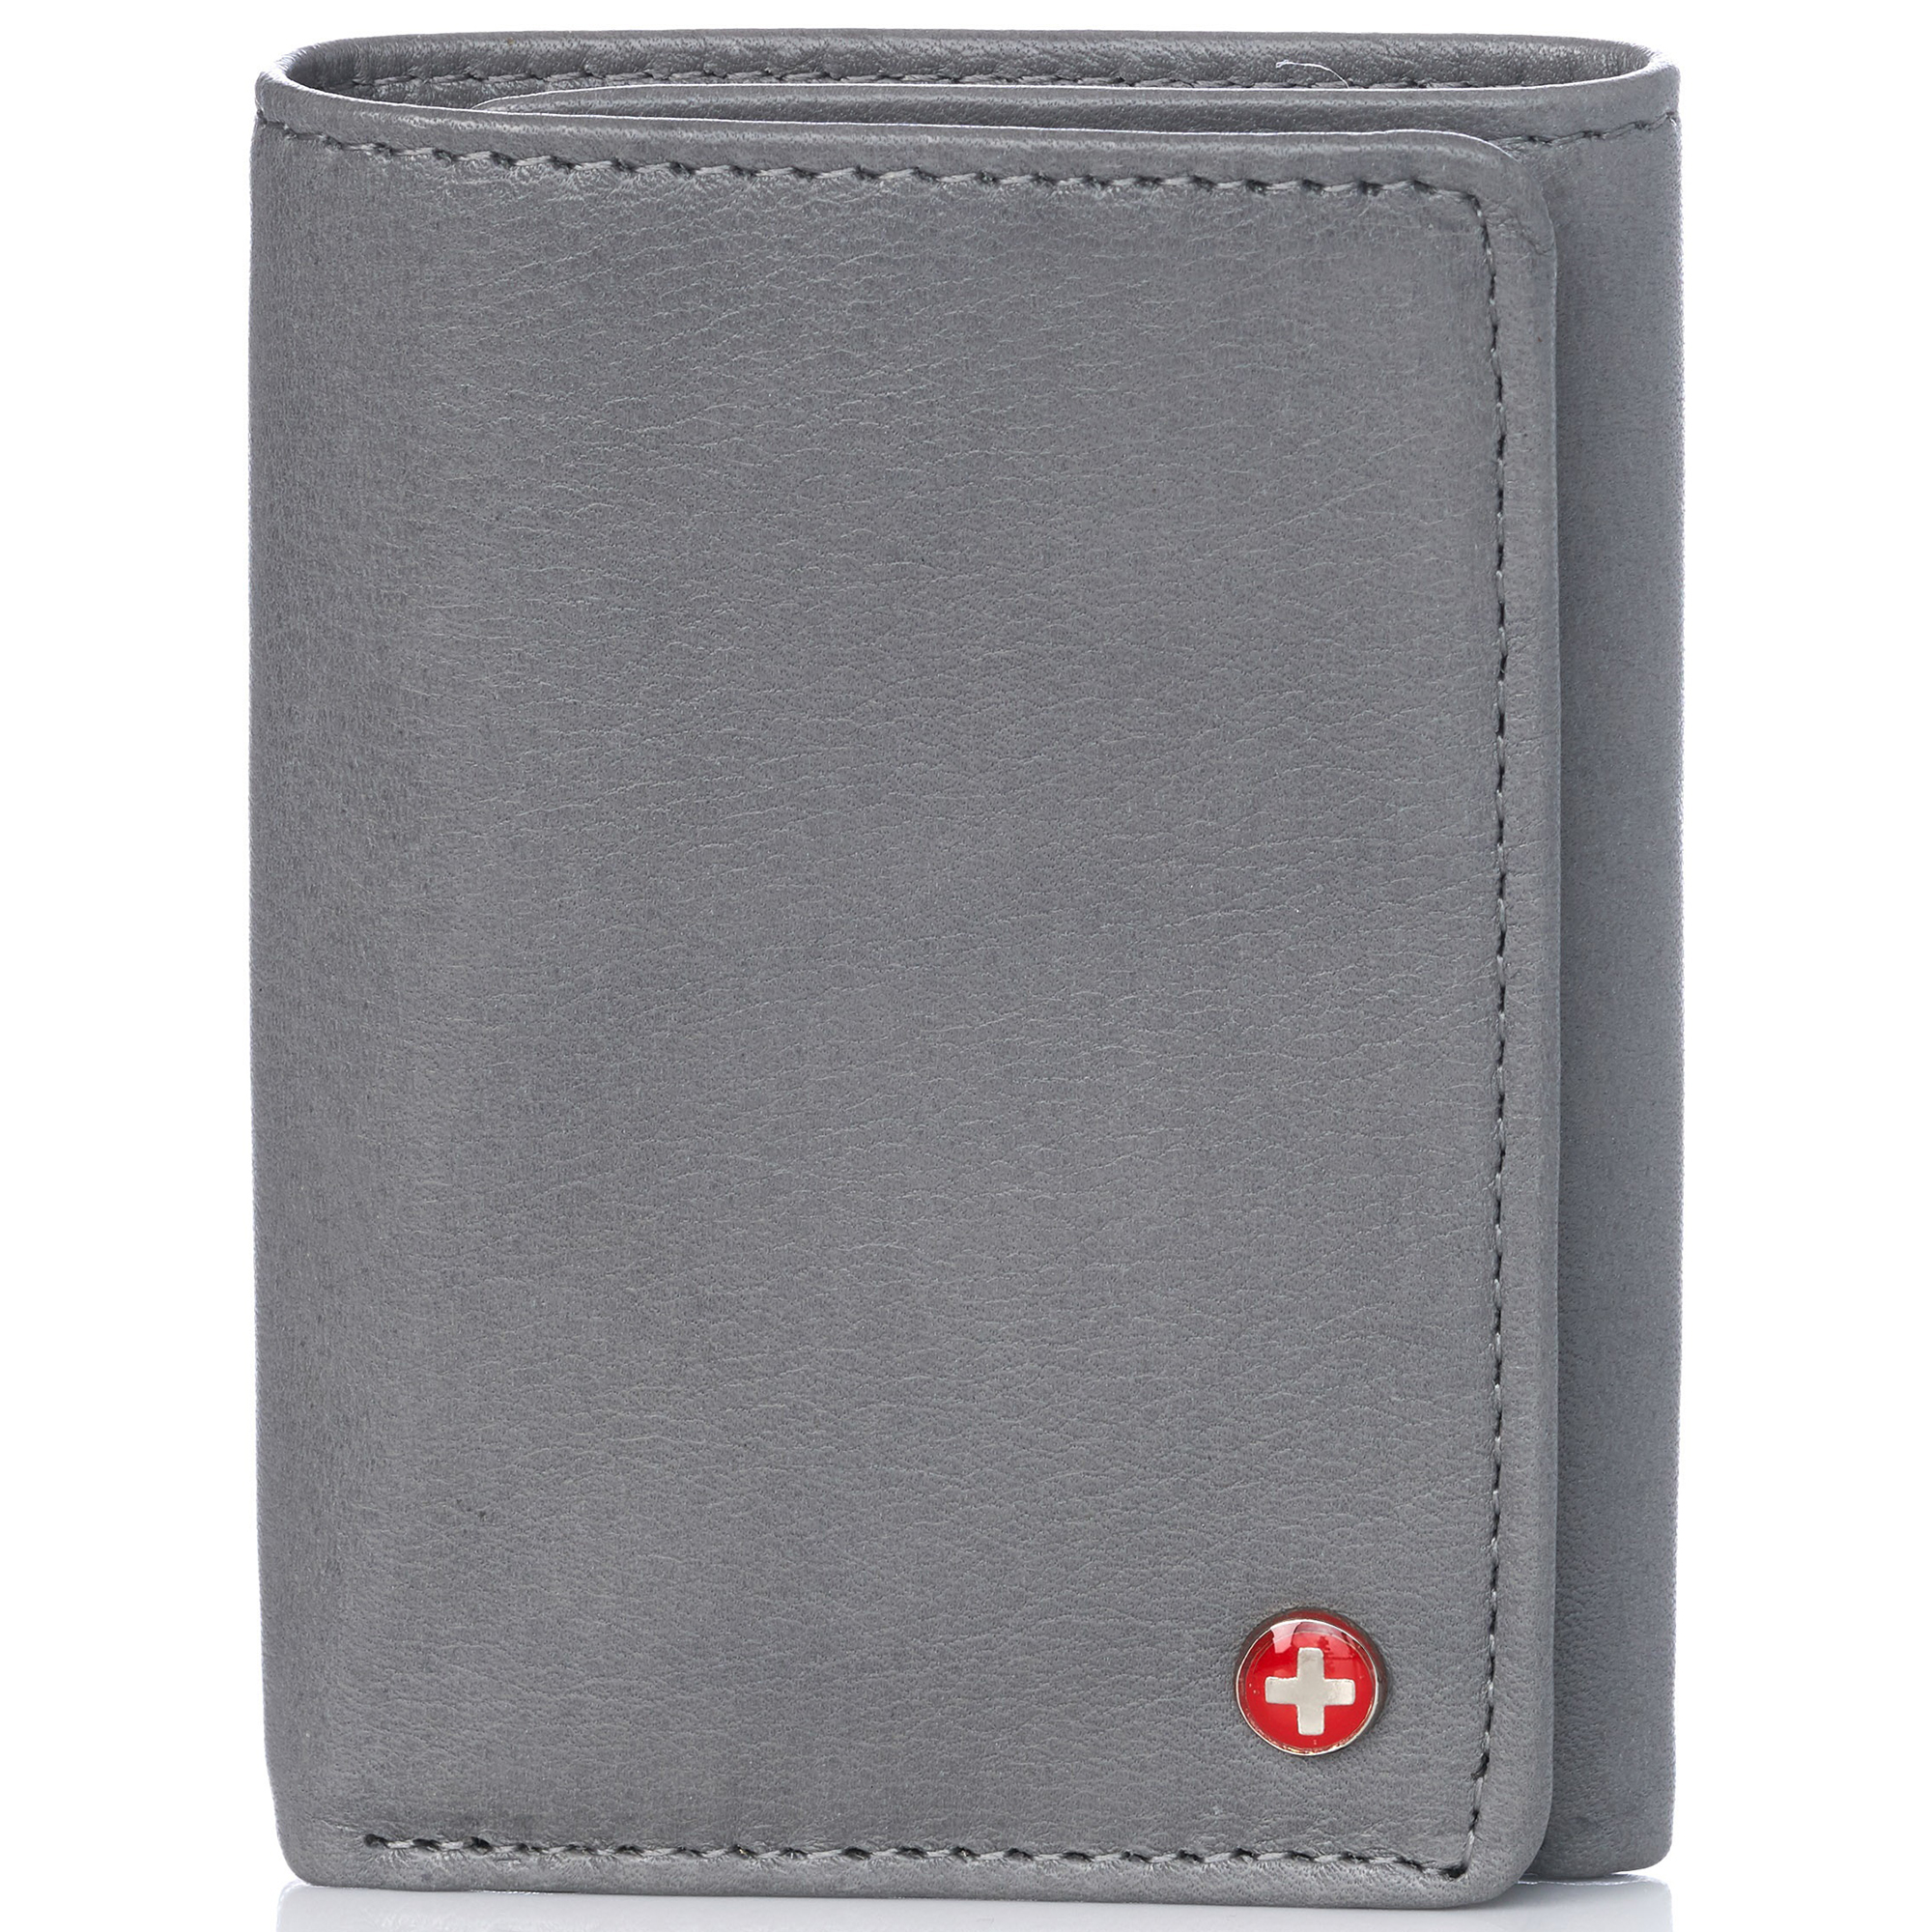 Alpine-Swiss-RFID-Mens-Wallet-Deluxe-Capacity-Trifold-With-Divided-Bill-Section thumbnail 105